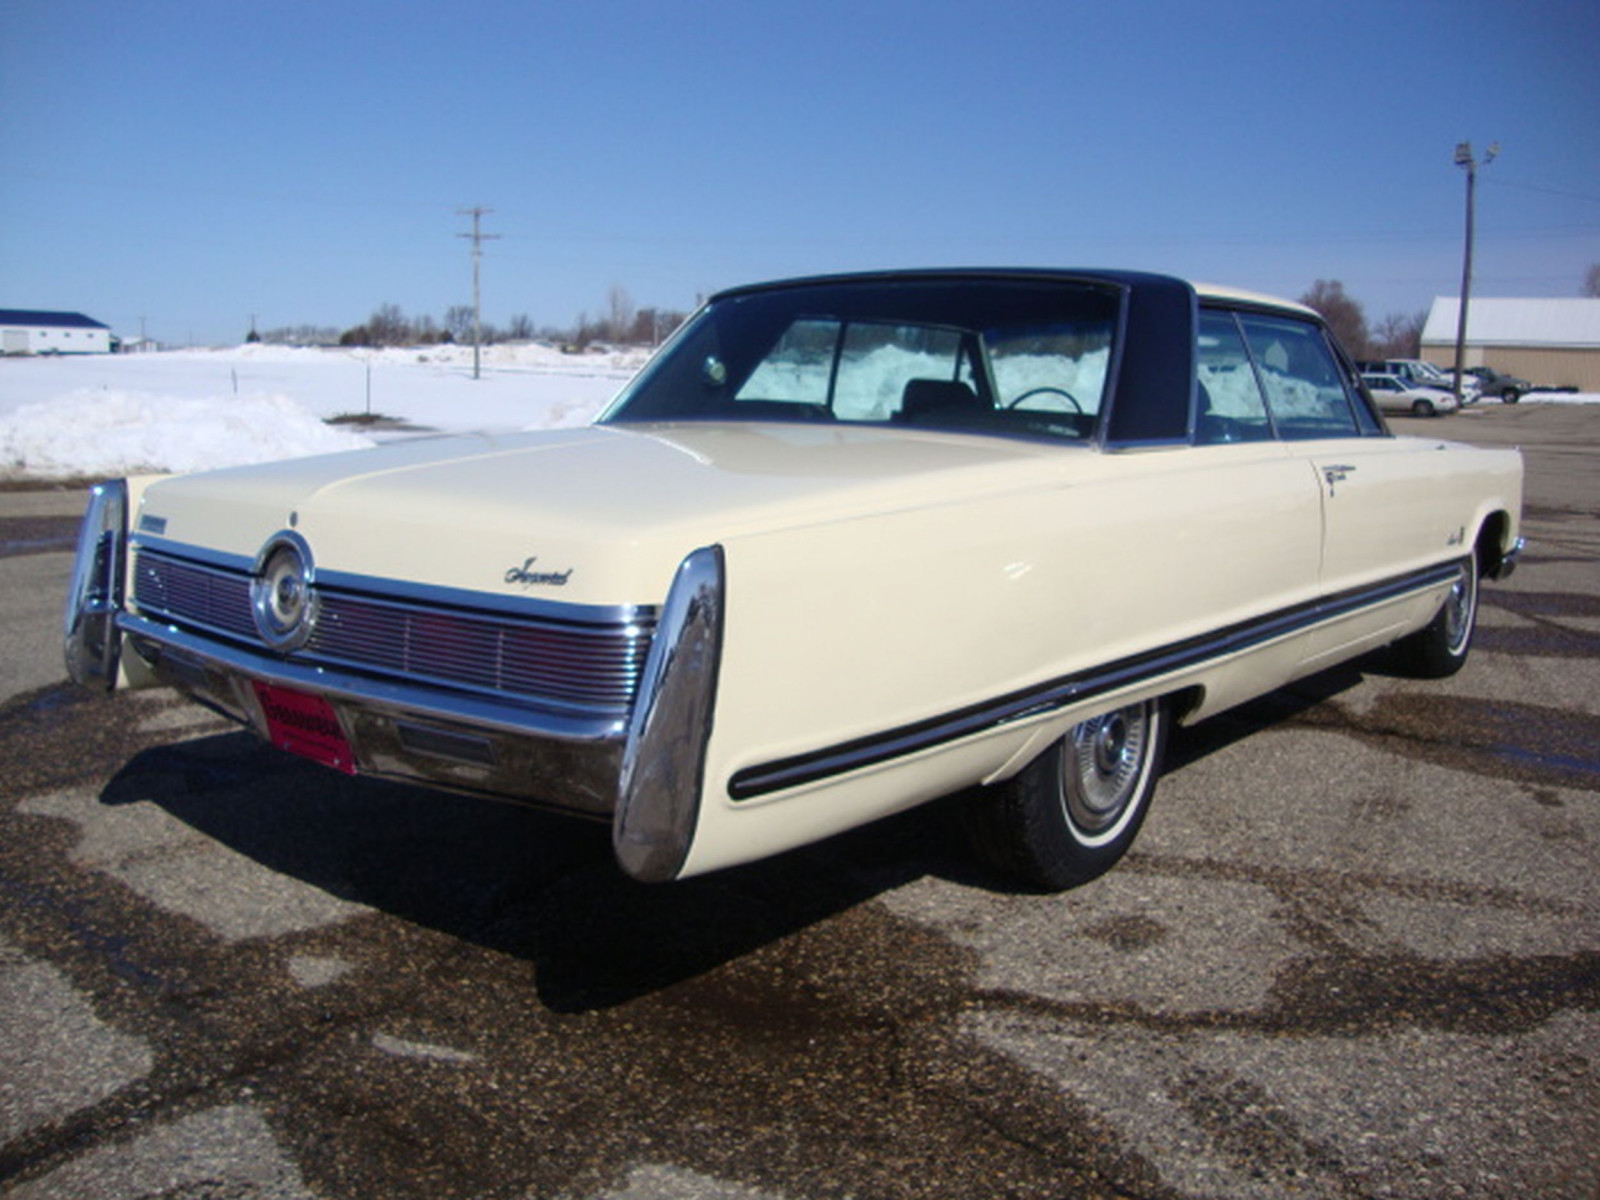 1967 Chrysler Imperial Crown Coupe - Image 5